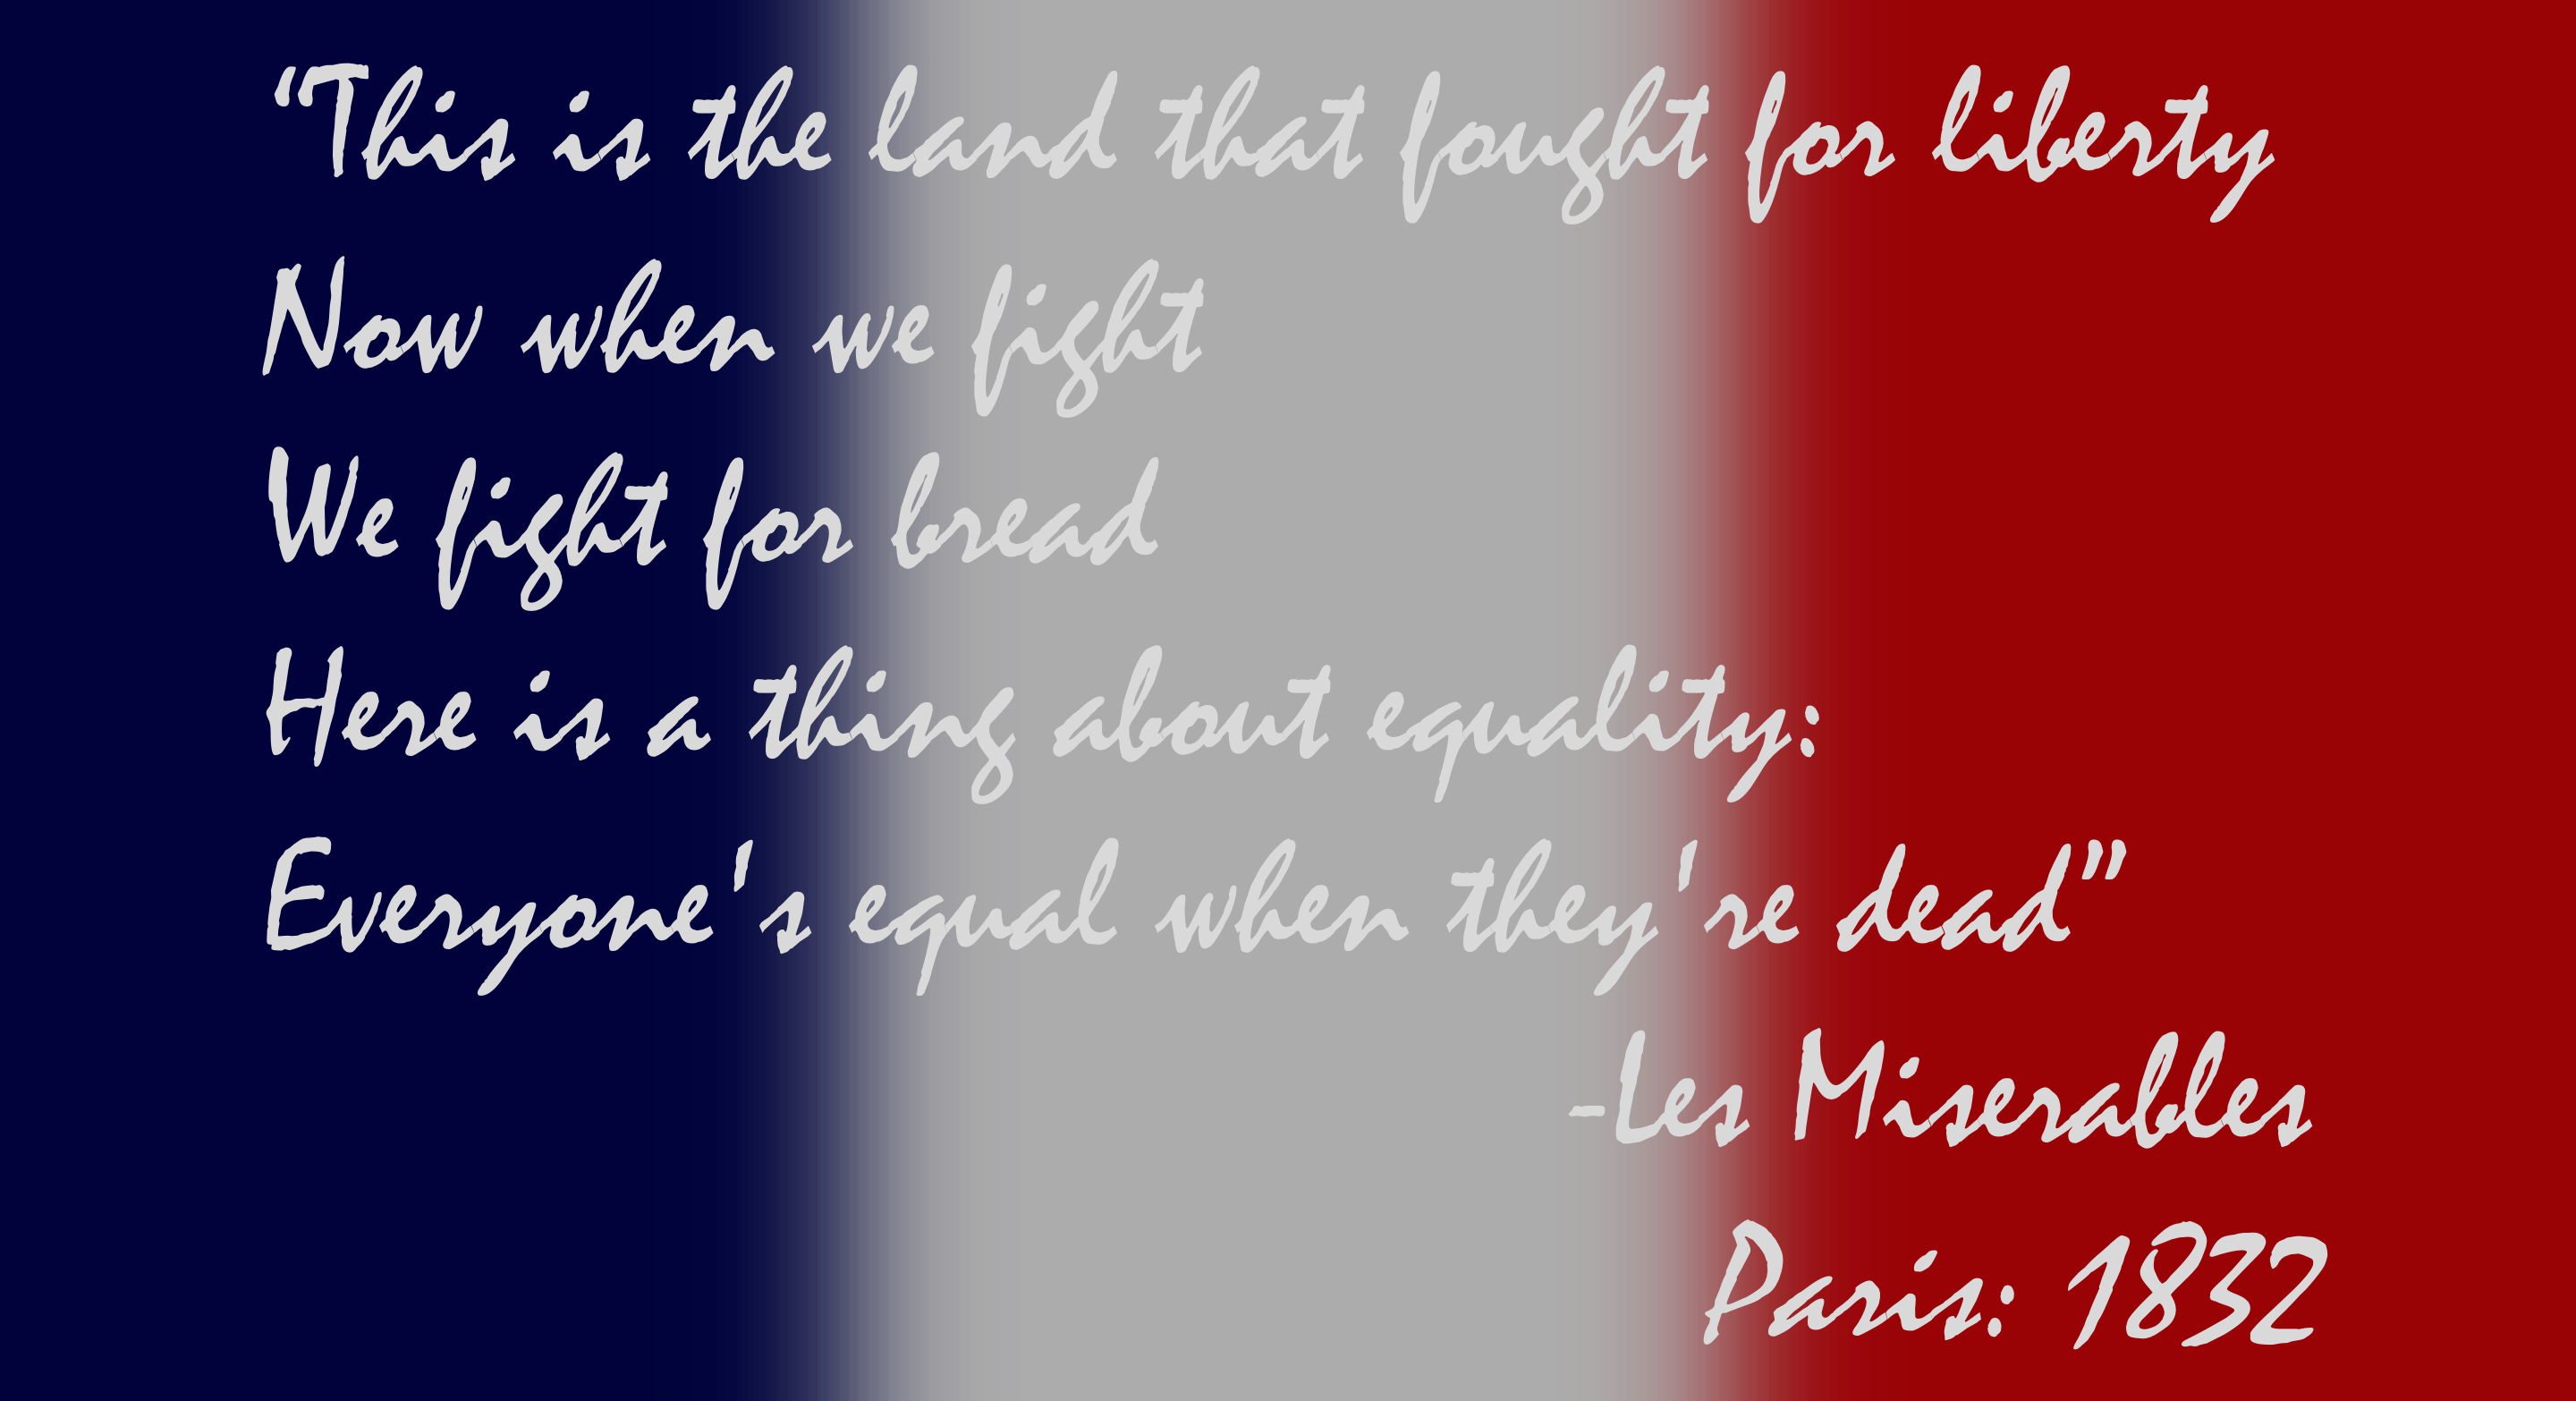 """This is the land that fought for liberty…"" -Les Miserables [2880 × 1566 pixels]"